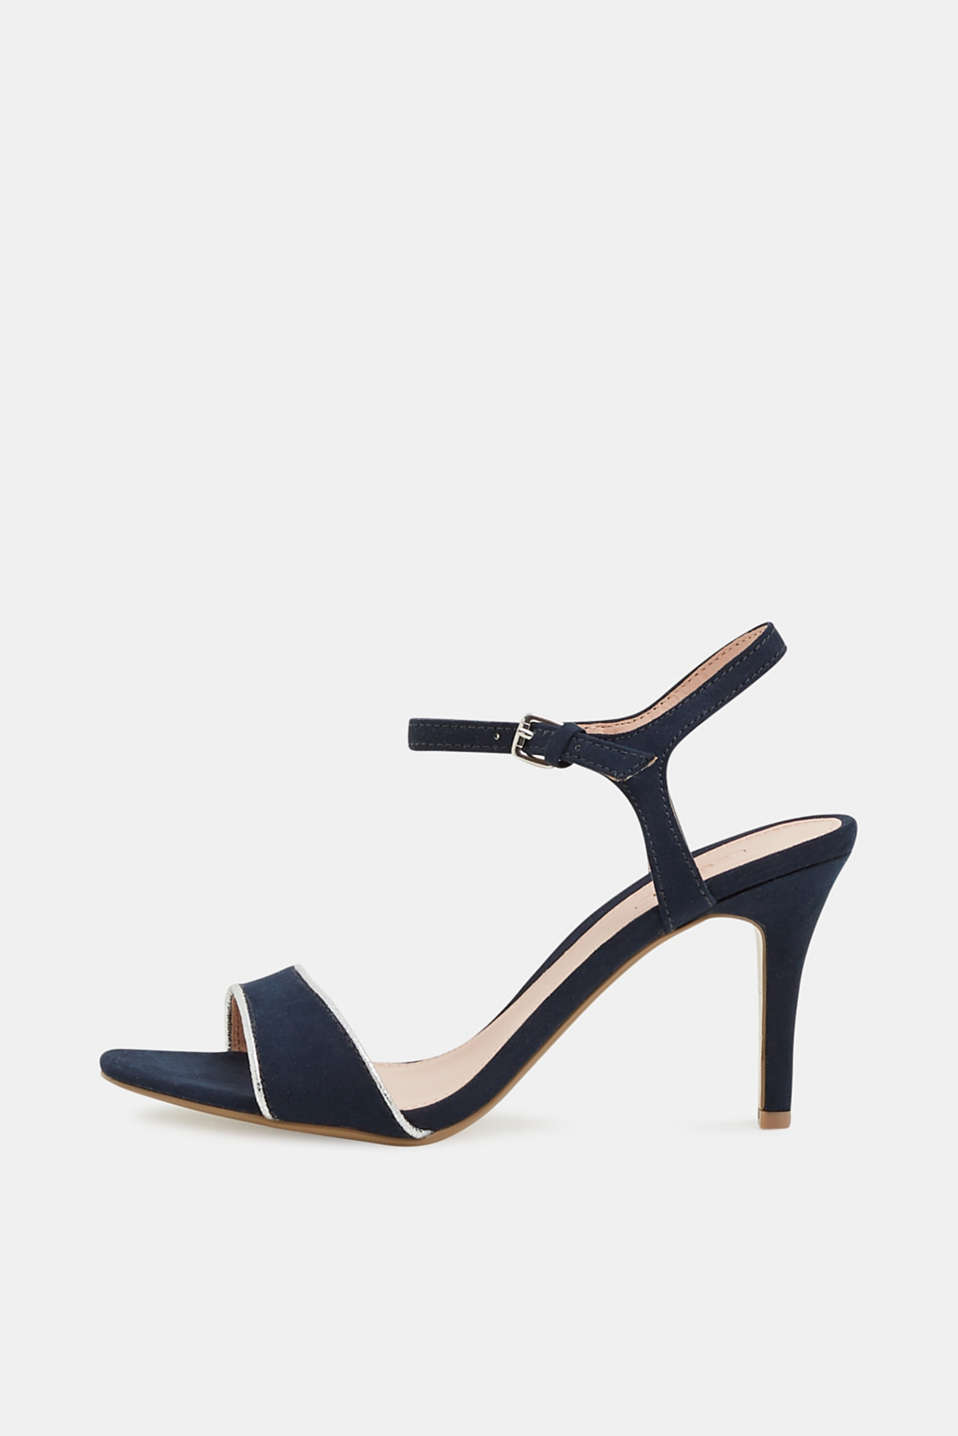 Suede sandals with metallic accents, NAVY 5, detail image number 0